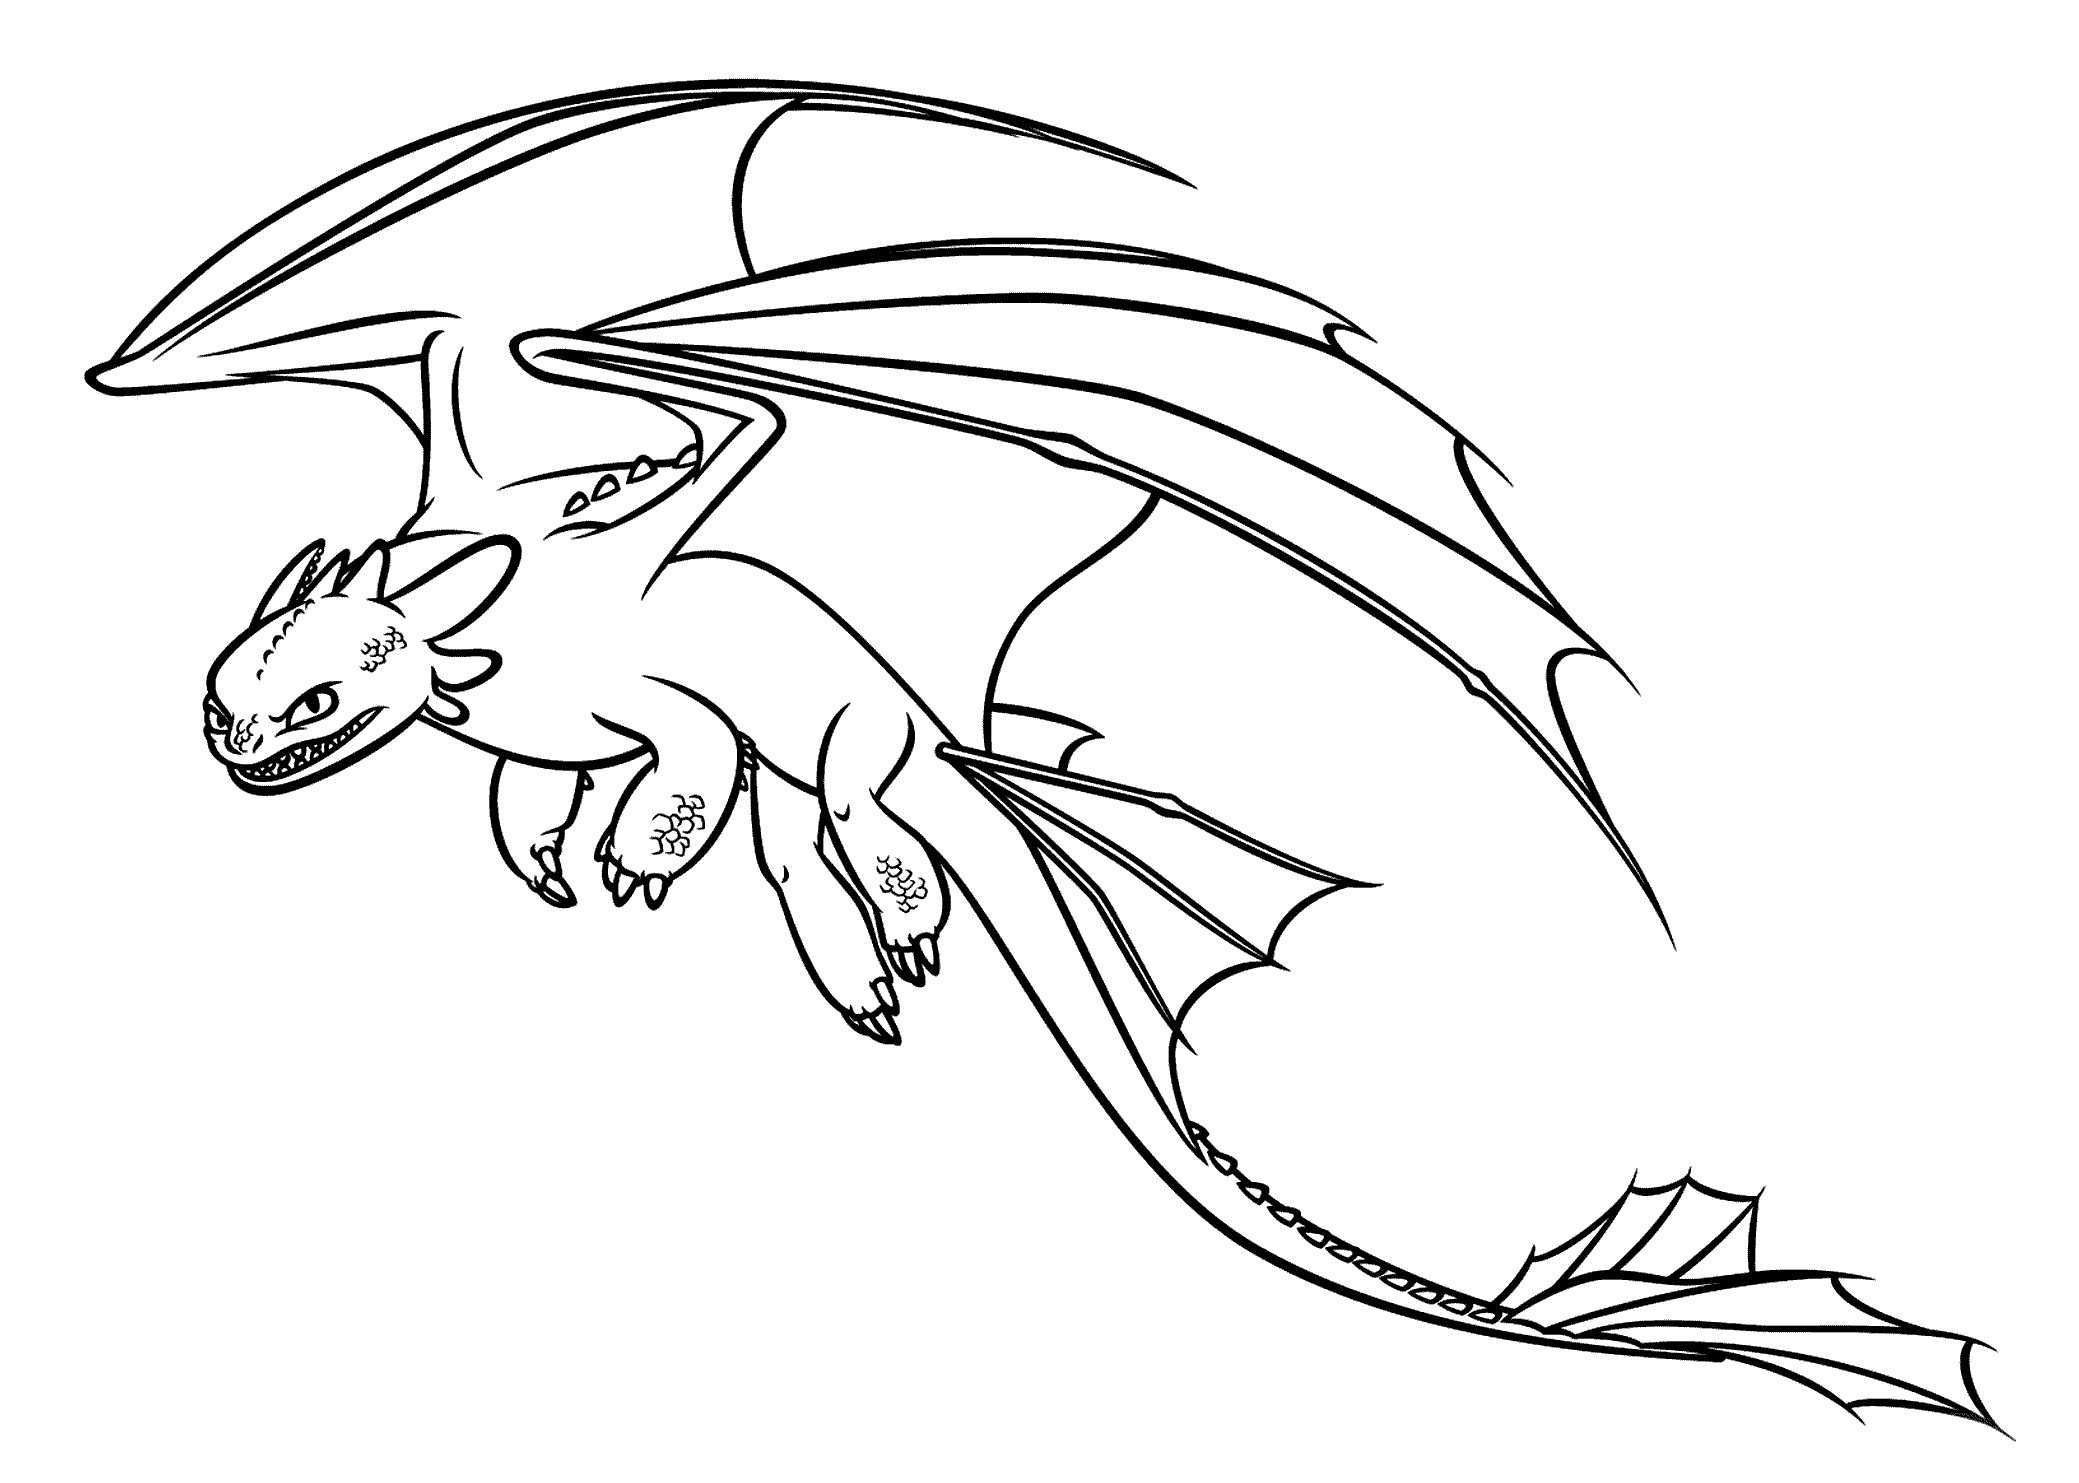 25 Awesome Image Of Coloring Pages Dragons Davemelillo Com Dragon Coloring Page How Train Your Dragon How To Train Your Dragon